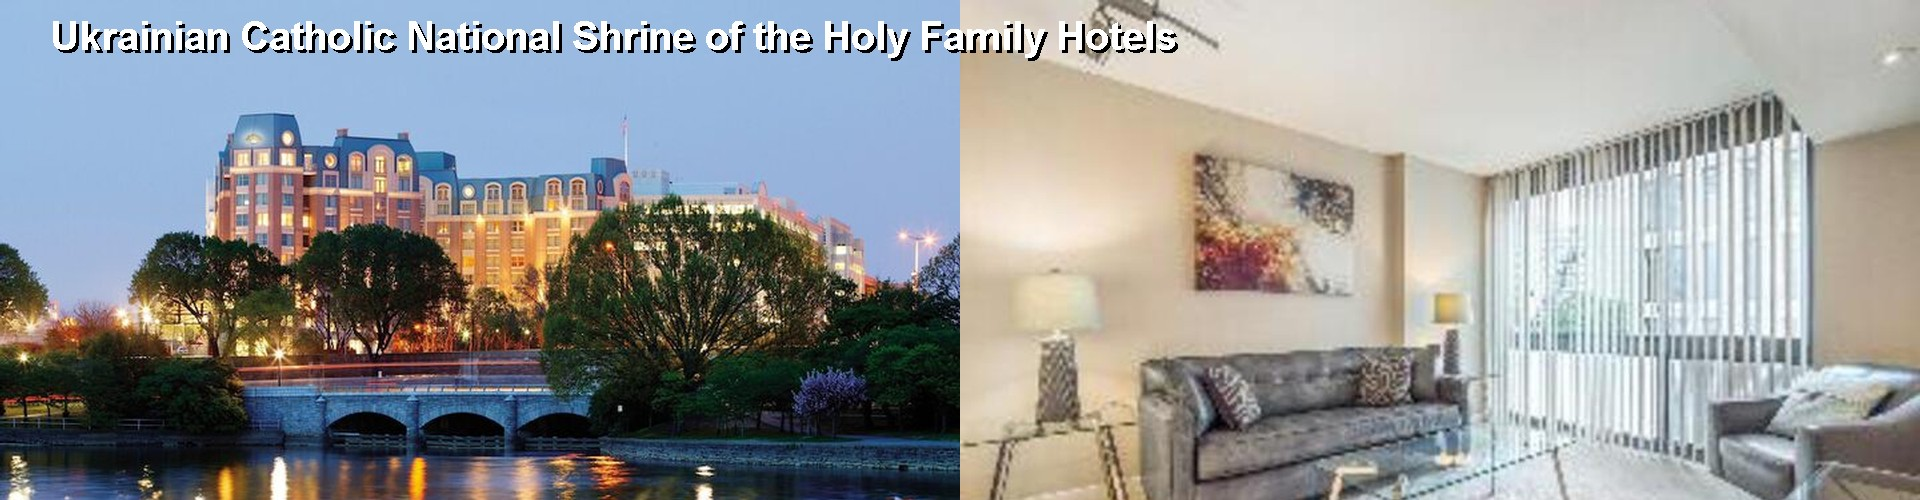 5 Best Hotels near Ukrainian Catholic National Shrine of the Holy Family